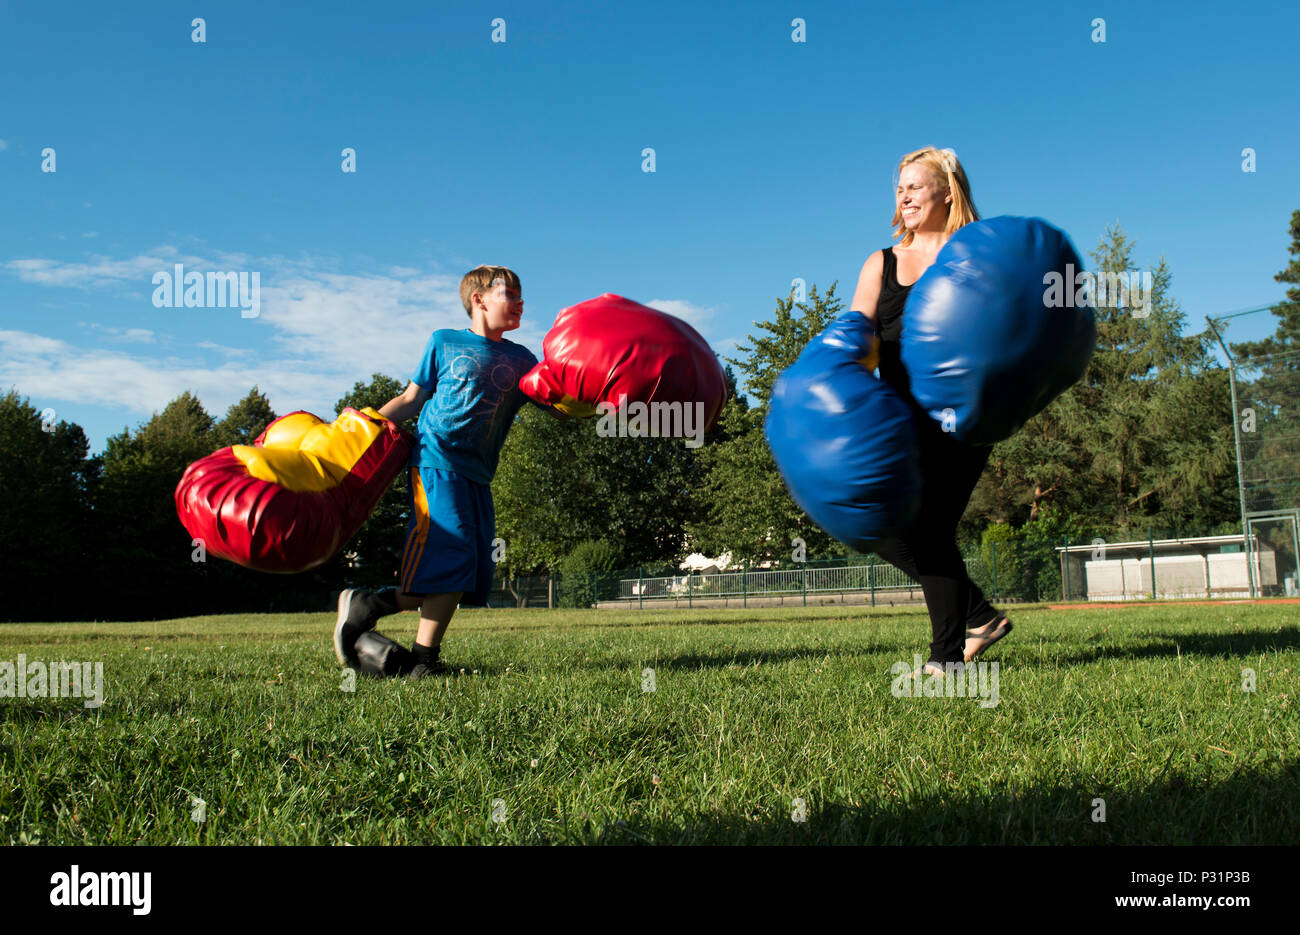 """A Kaiserslautern Military Community member and her son box during the Ramstein and Vogelweh Community Center's Olympic Family Night Aug. 22, 2016 at Ramstein Air Base, Germany. To earn a medal, children also participated in sumo wrestling, basketball, a three-legged race, a potato sack race and a """"ski race"""". (U.S. Air Force photo/Senior Airman Tryphena Mayhugh) - Stock Image"""